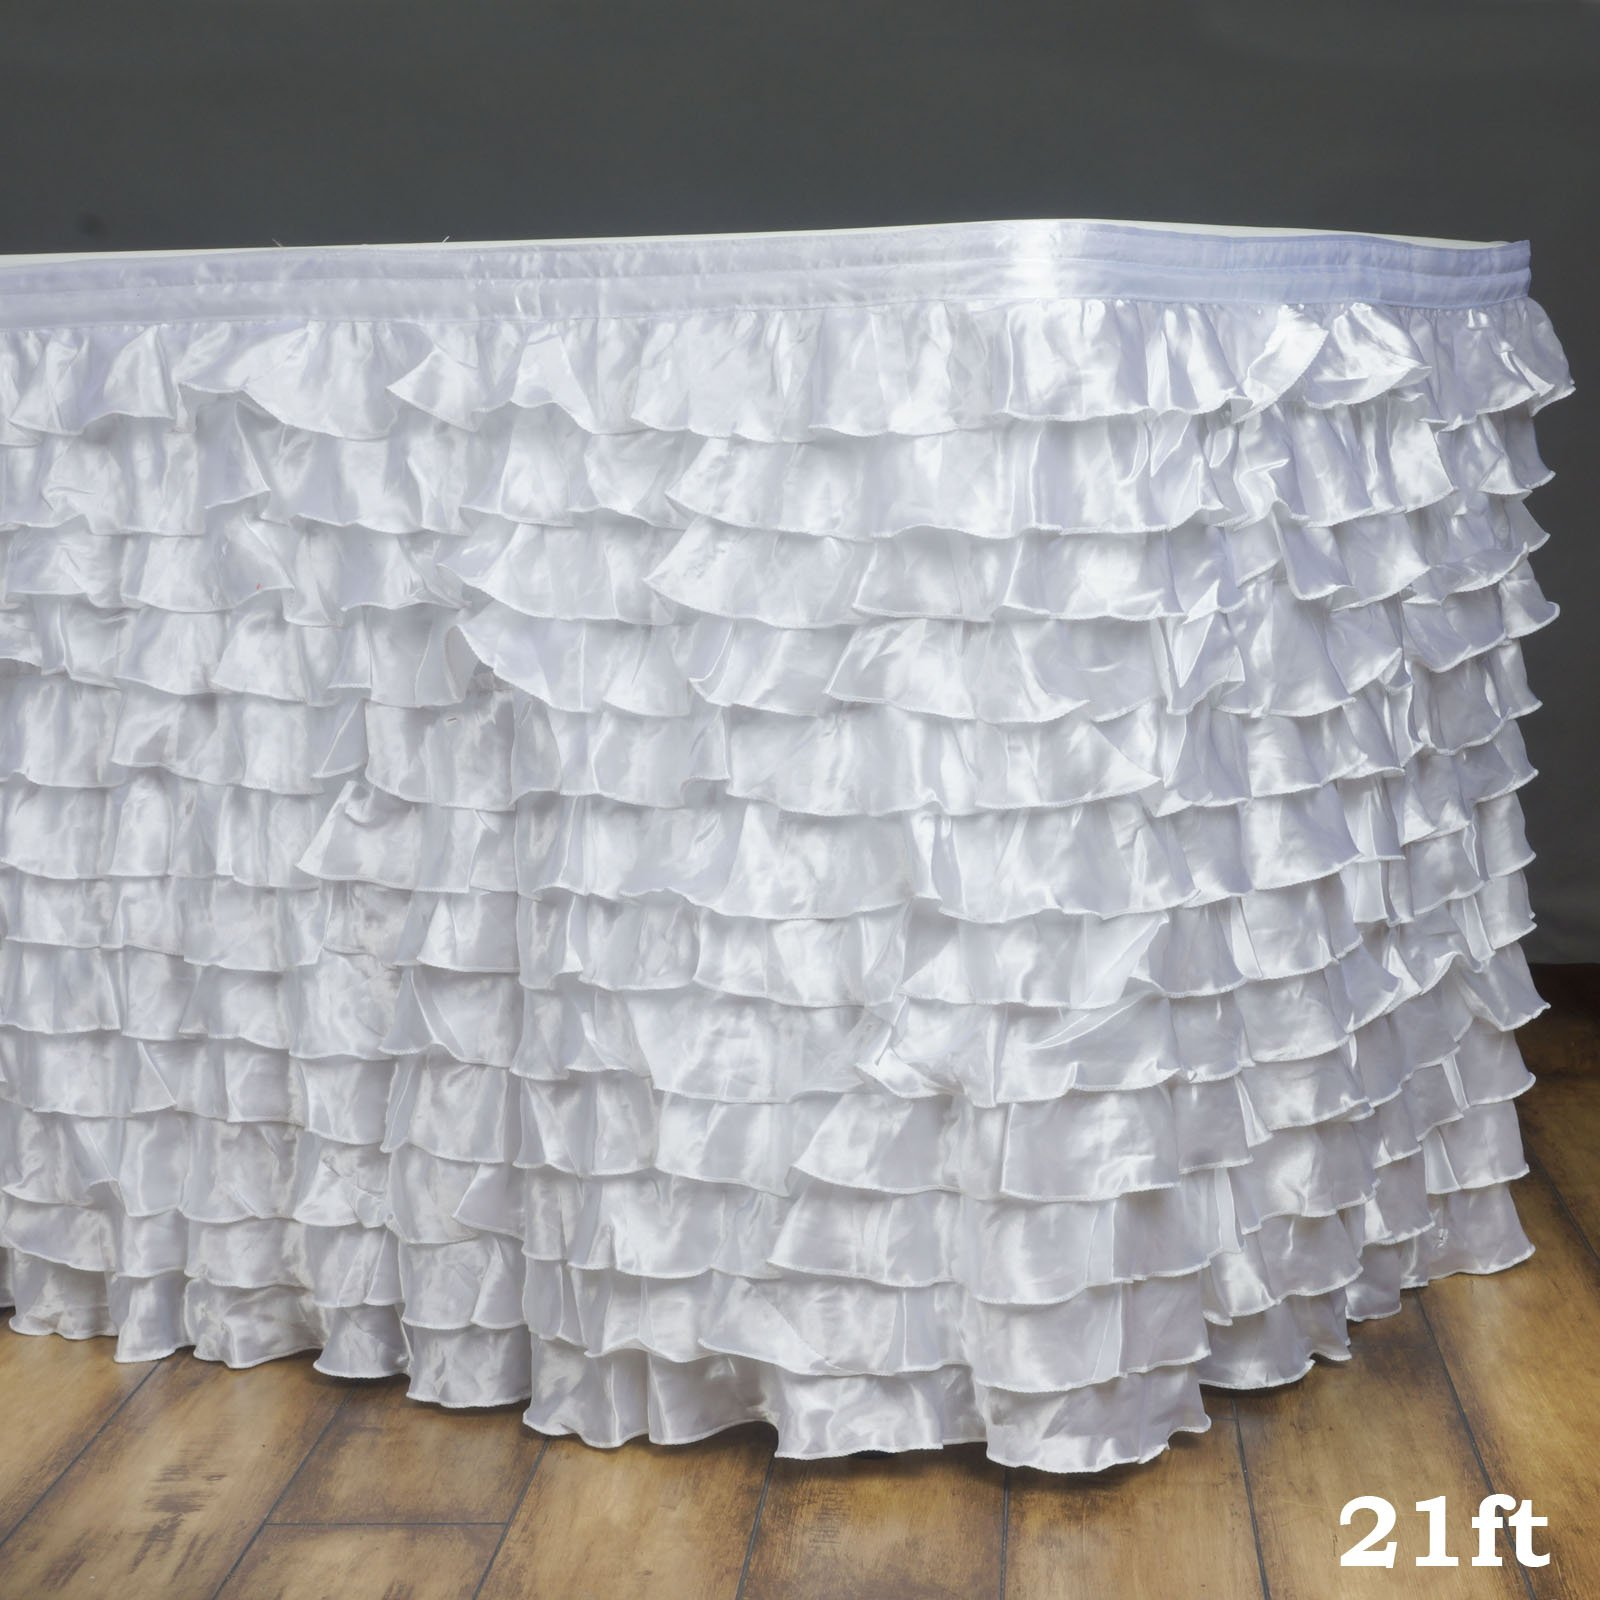 Efavormart 21ft Flamenca Satin Ruffle Table Skirt for Kitchen Dining Catering Wedding Birthday Party Decorations Events - White by Efavormart.com